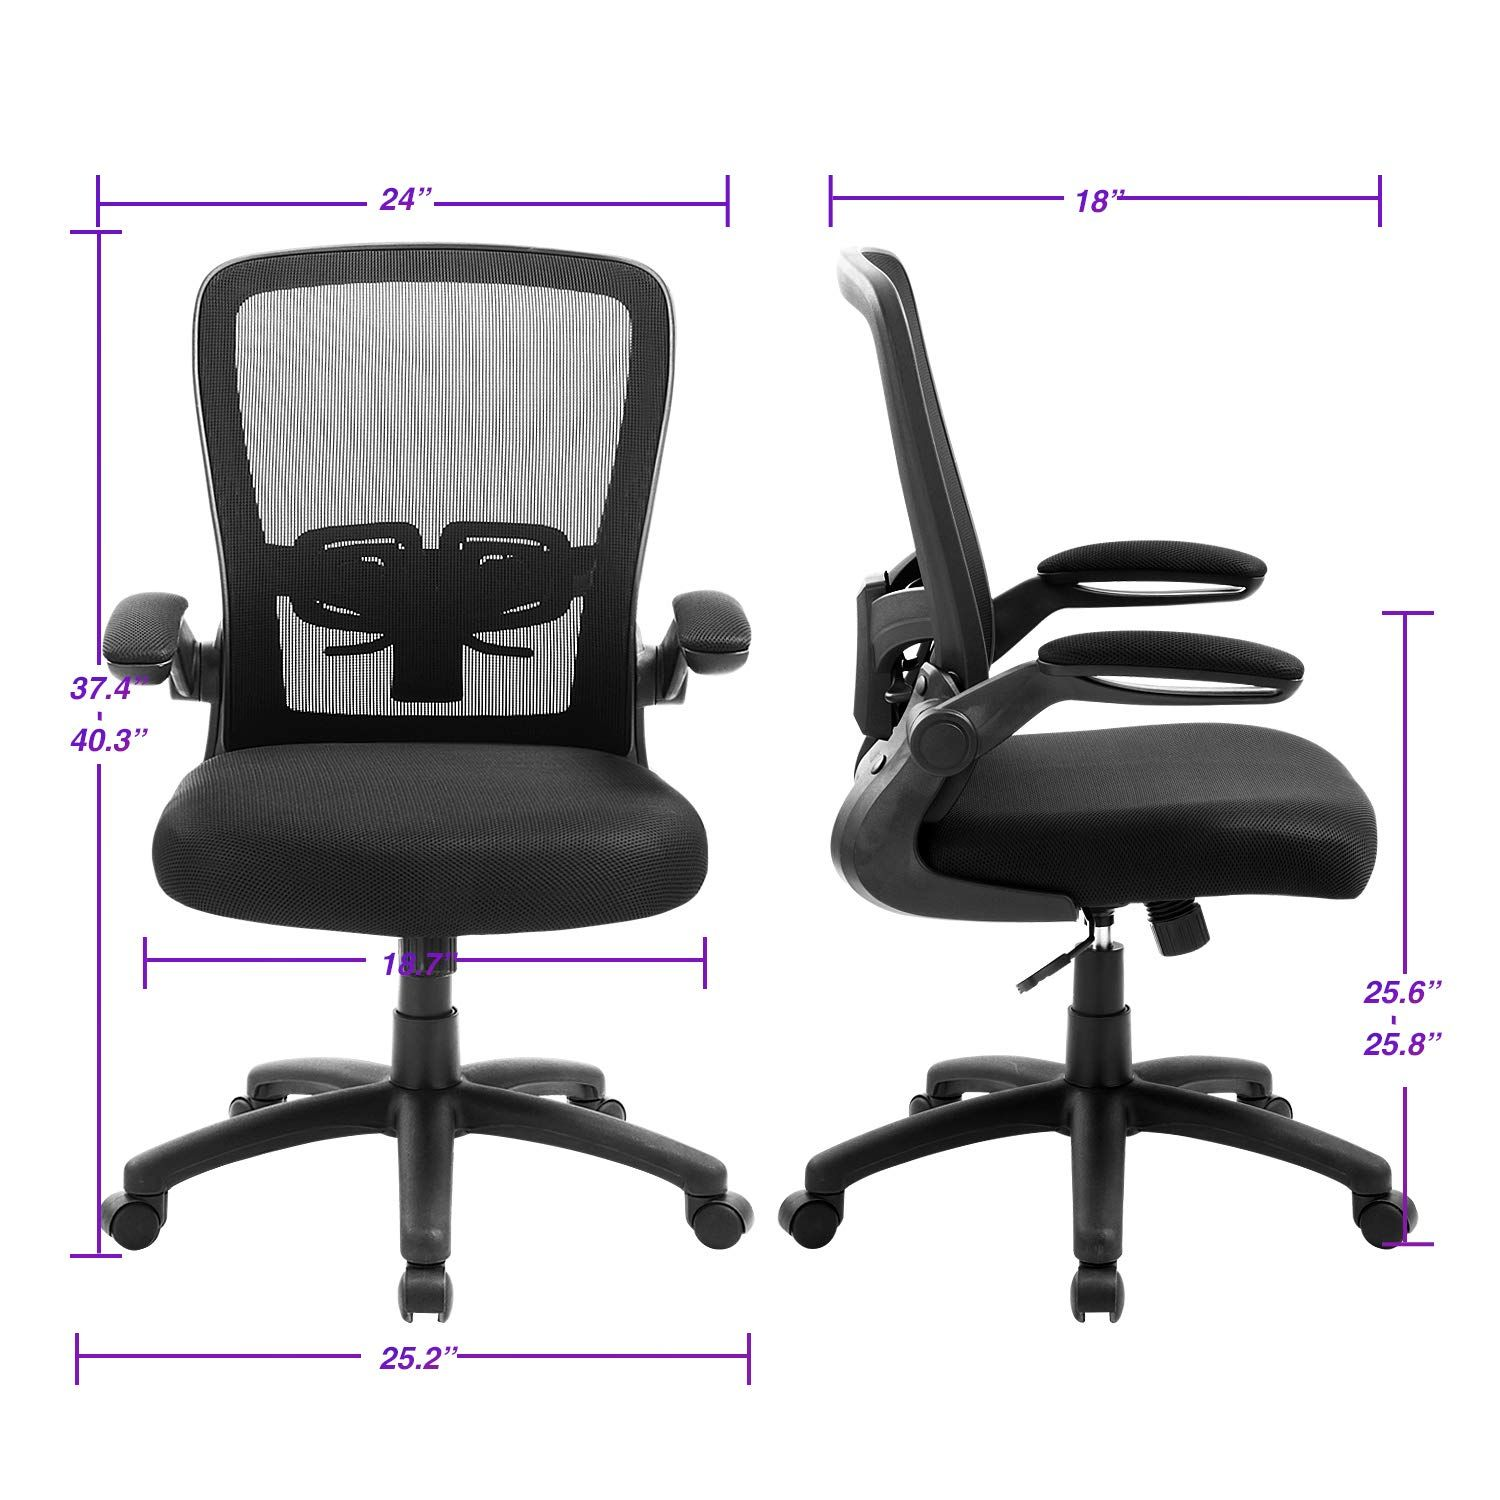 Office Chair Zlhecto Ergonomic Desk Chair With Adjustable Height And Lumbar Support High Back Me Mesh Computer Chair Home Office Furniture Ergonomic Desk Chair